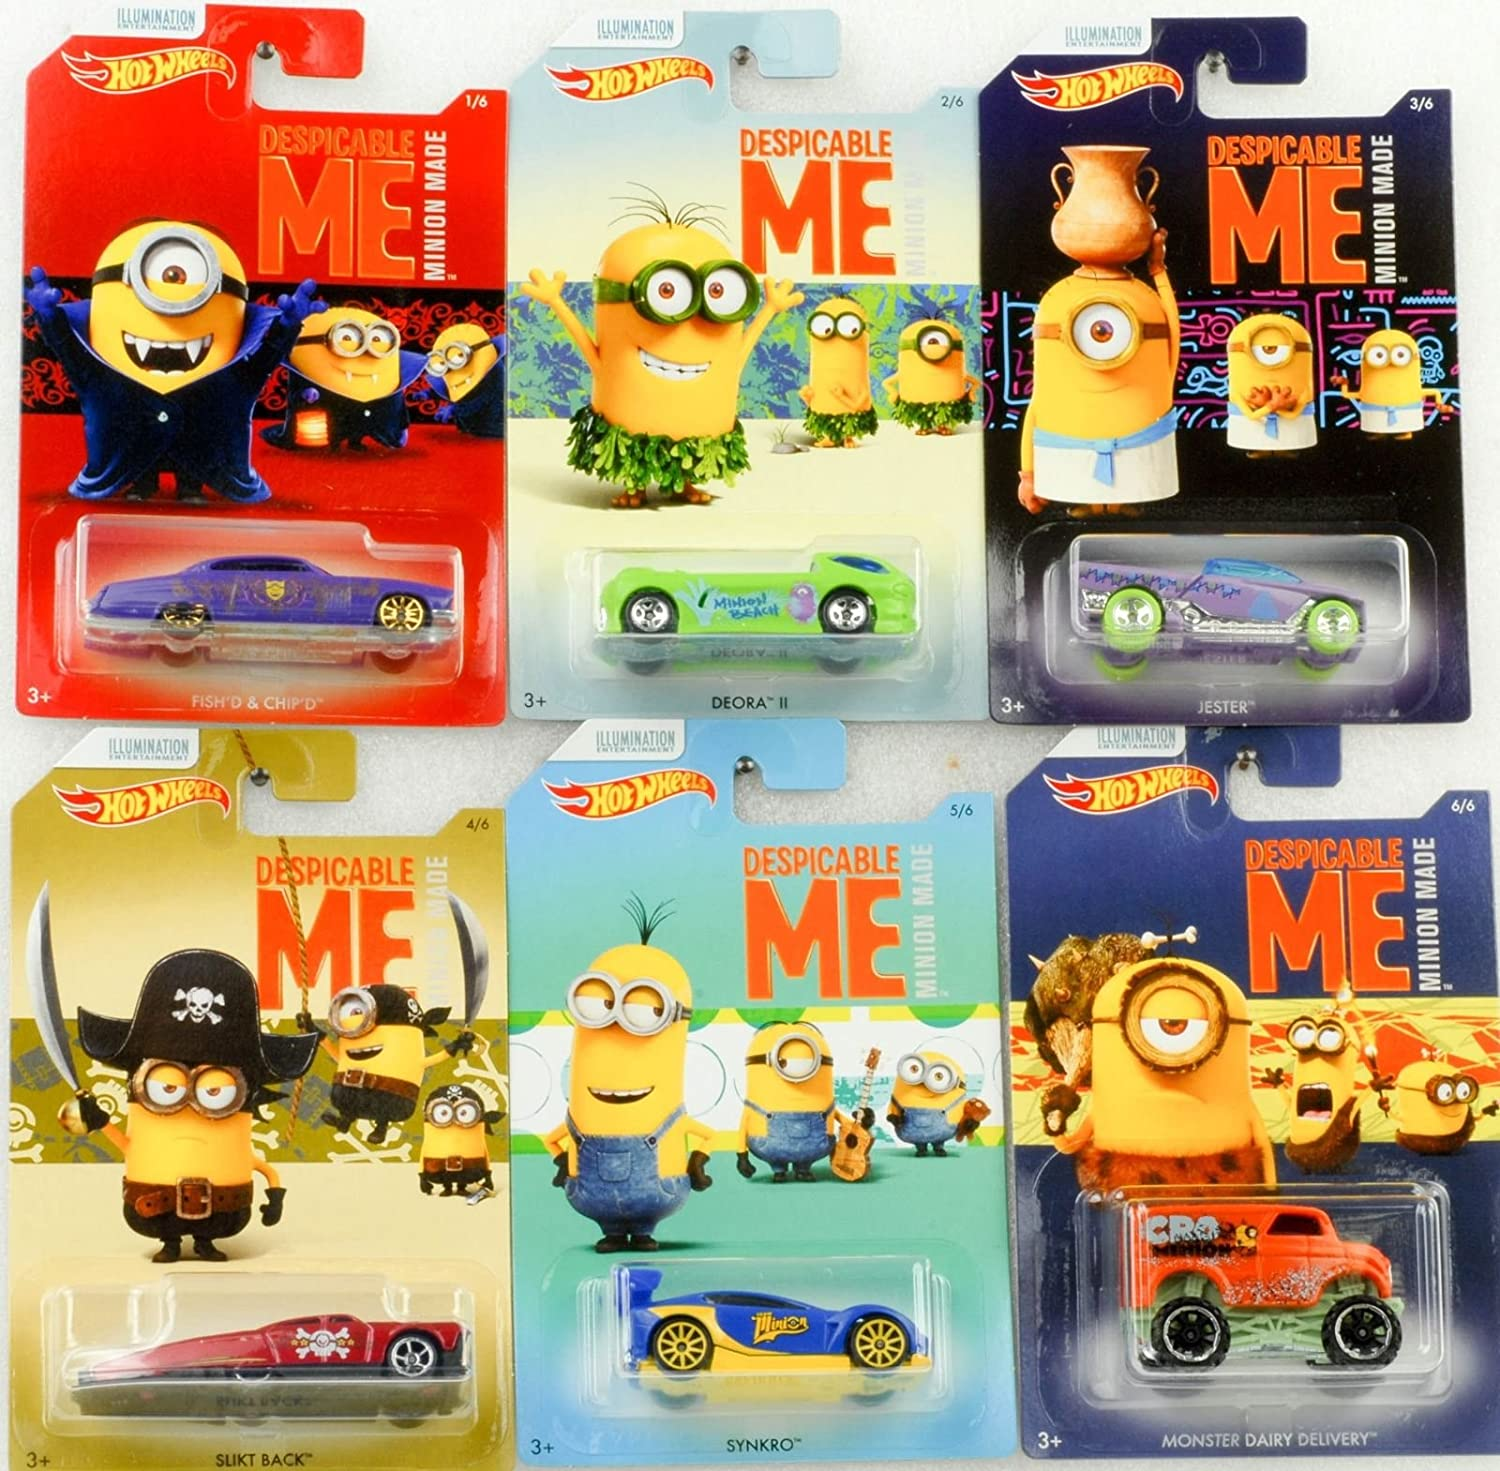 Hot Wheels Minions Selecting The Minions Despicable Me Minion Made Set Of 6 Character Vehicles Die Cast Vehicles Amazon Co Uk Kitchen Home